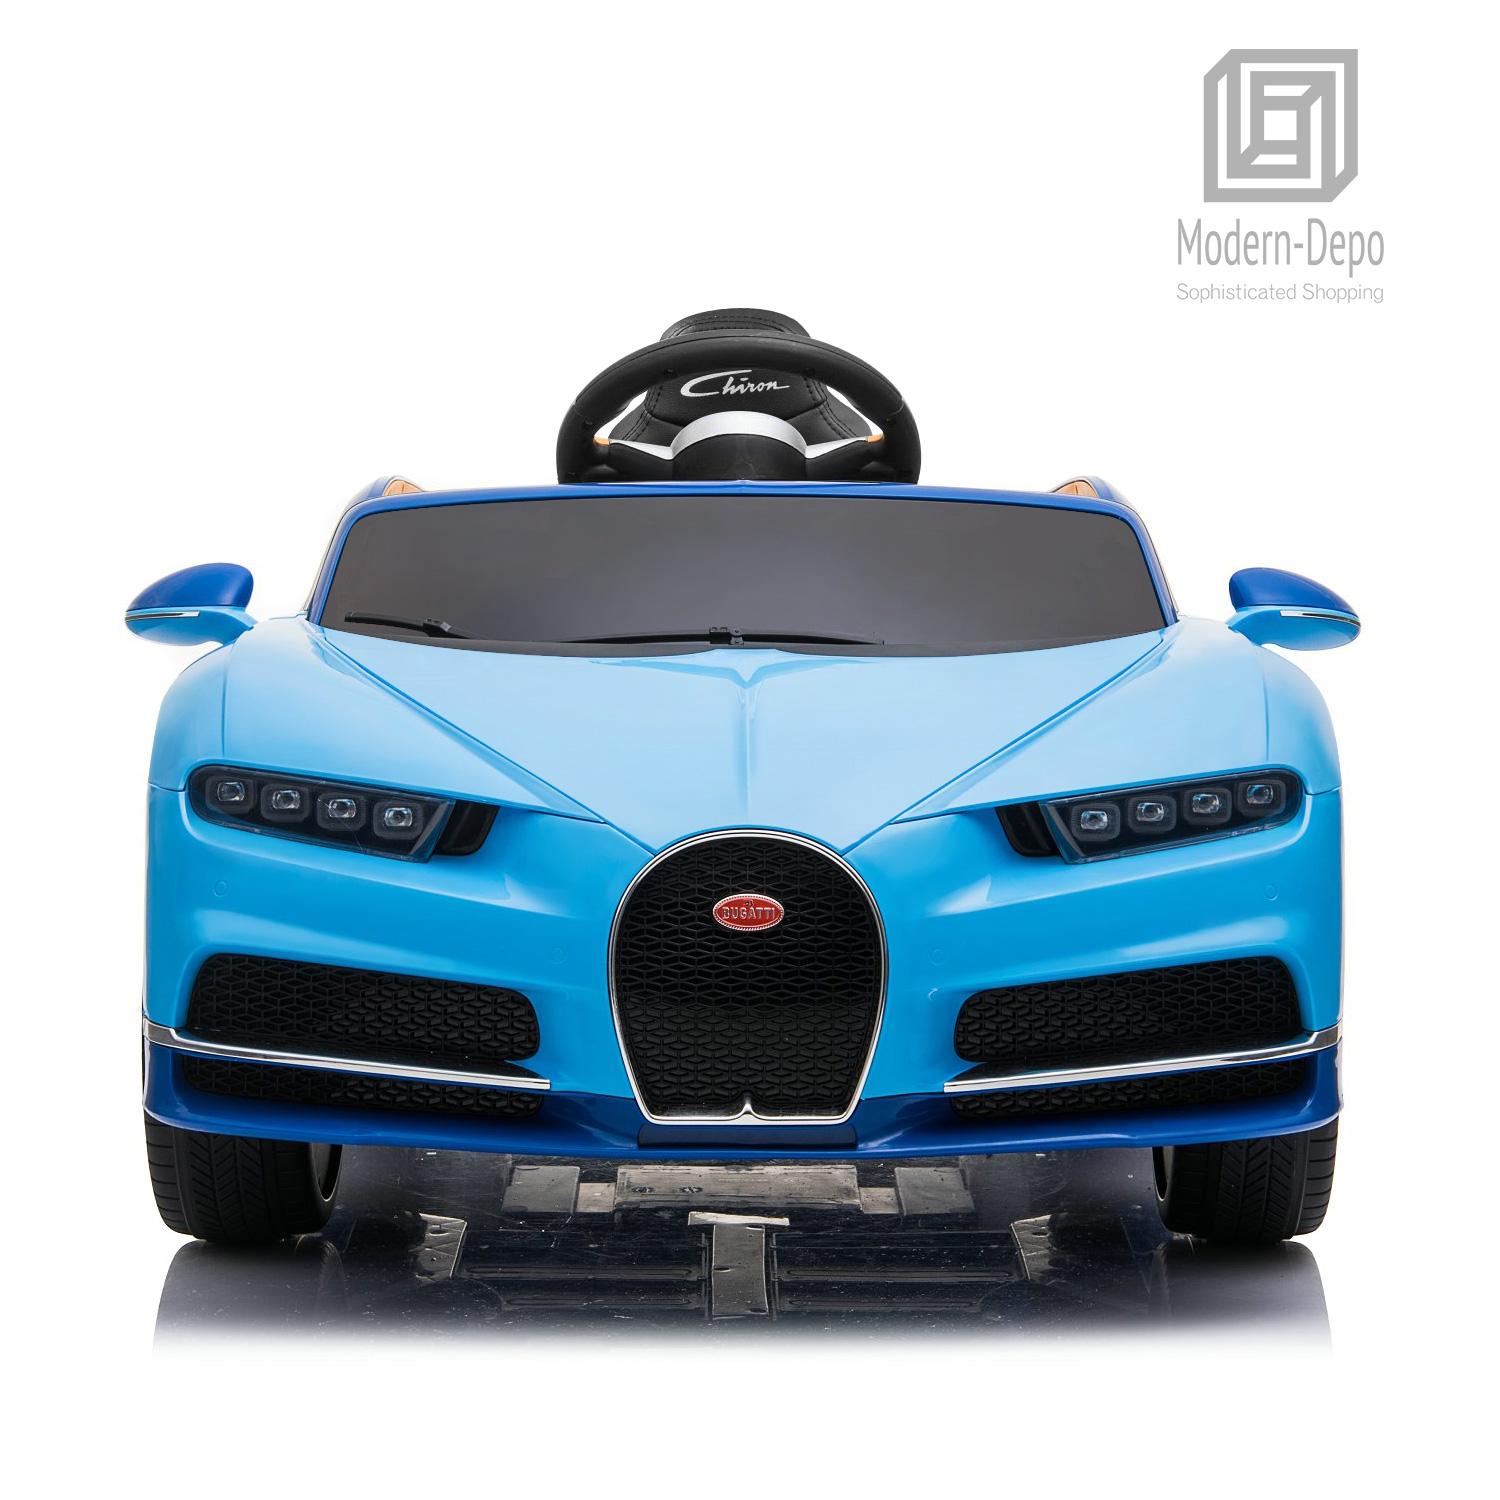 Bugatti-Chiron-12V-Kids-Ride-On-Car-with-Remote-Control-High-Speed-Motor miniature 16